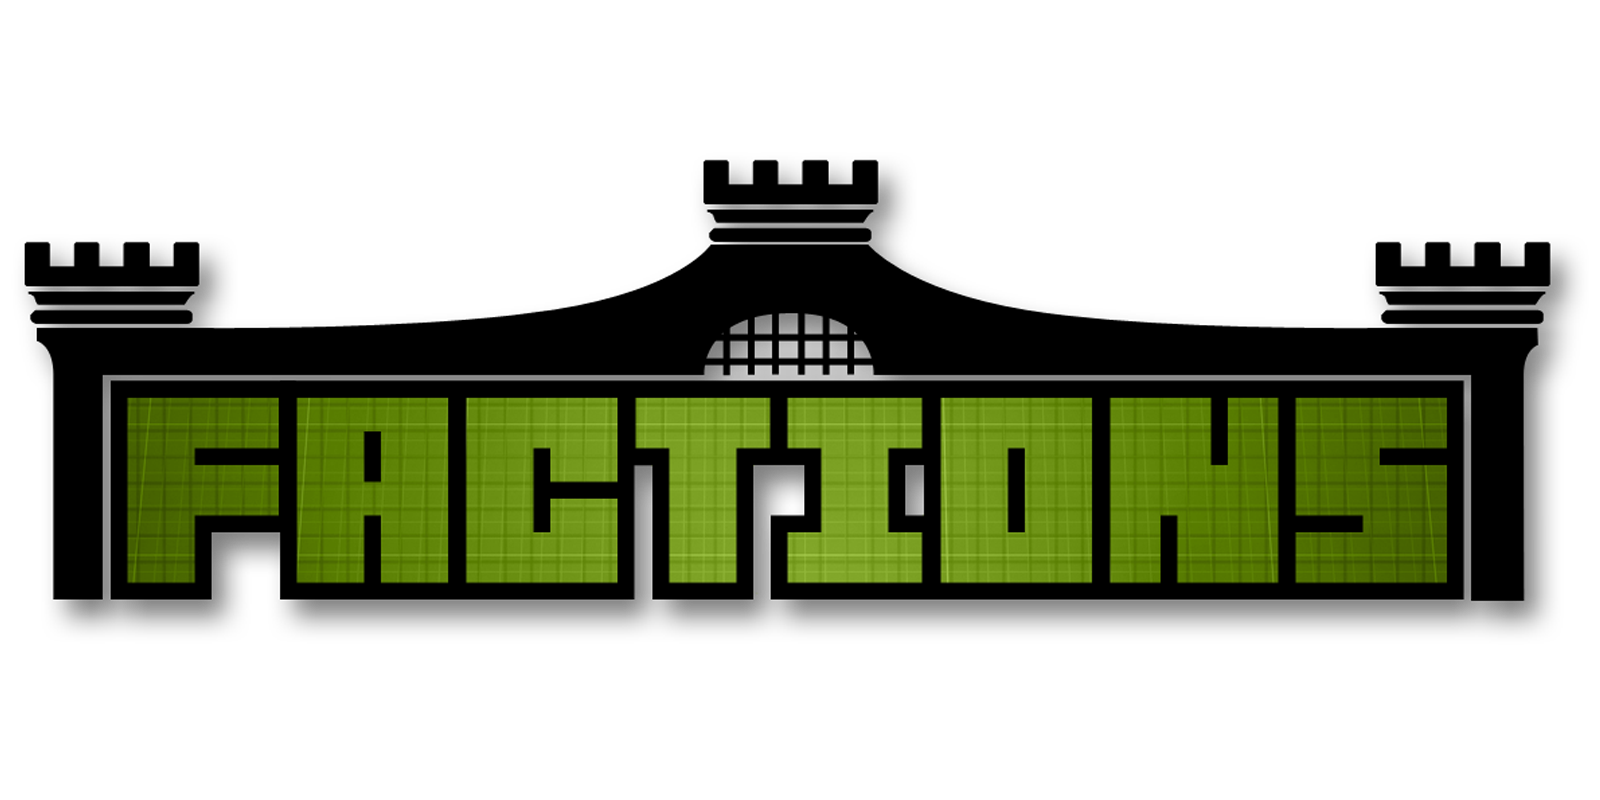 http://www.massivecraft.com/wp-content/uploads/2014/04/factions-logo-1600x800.png